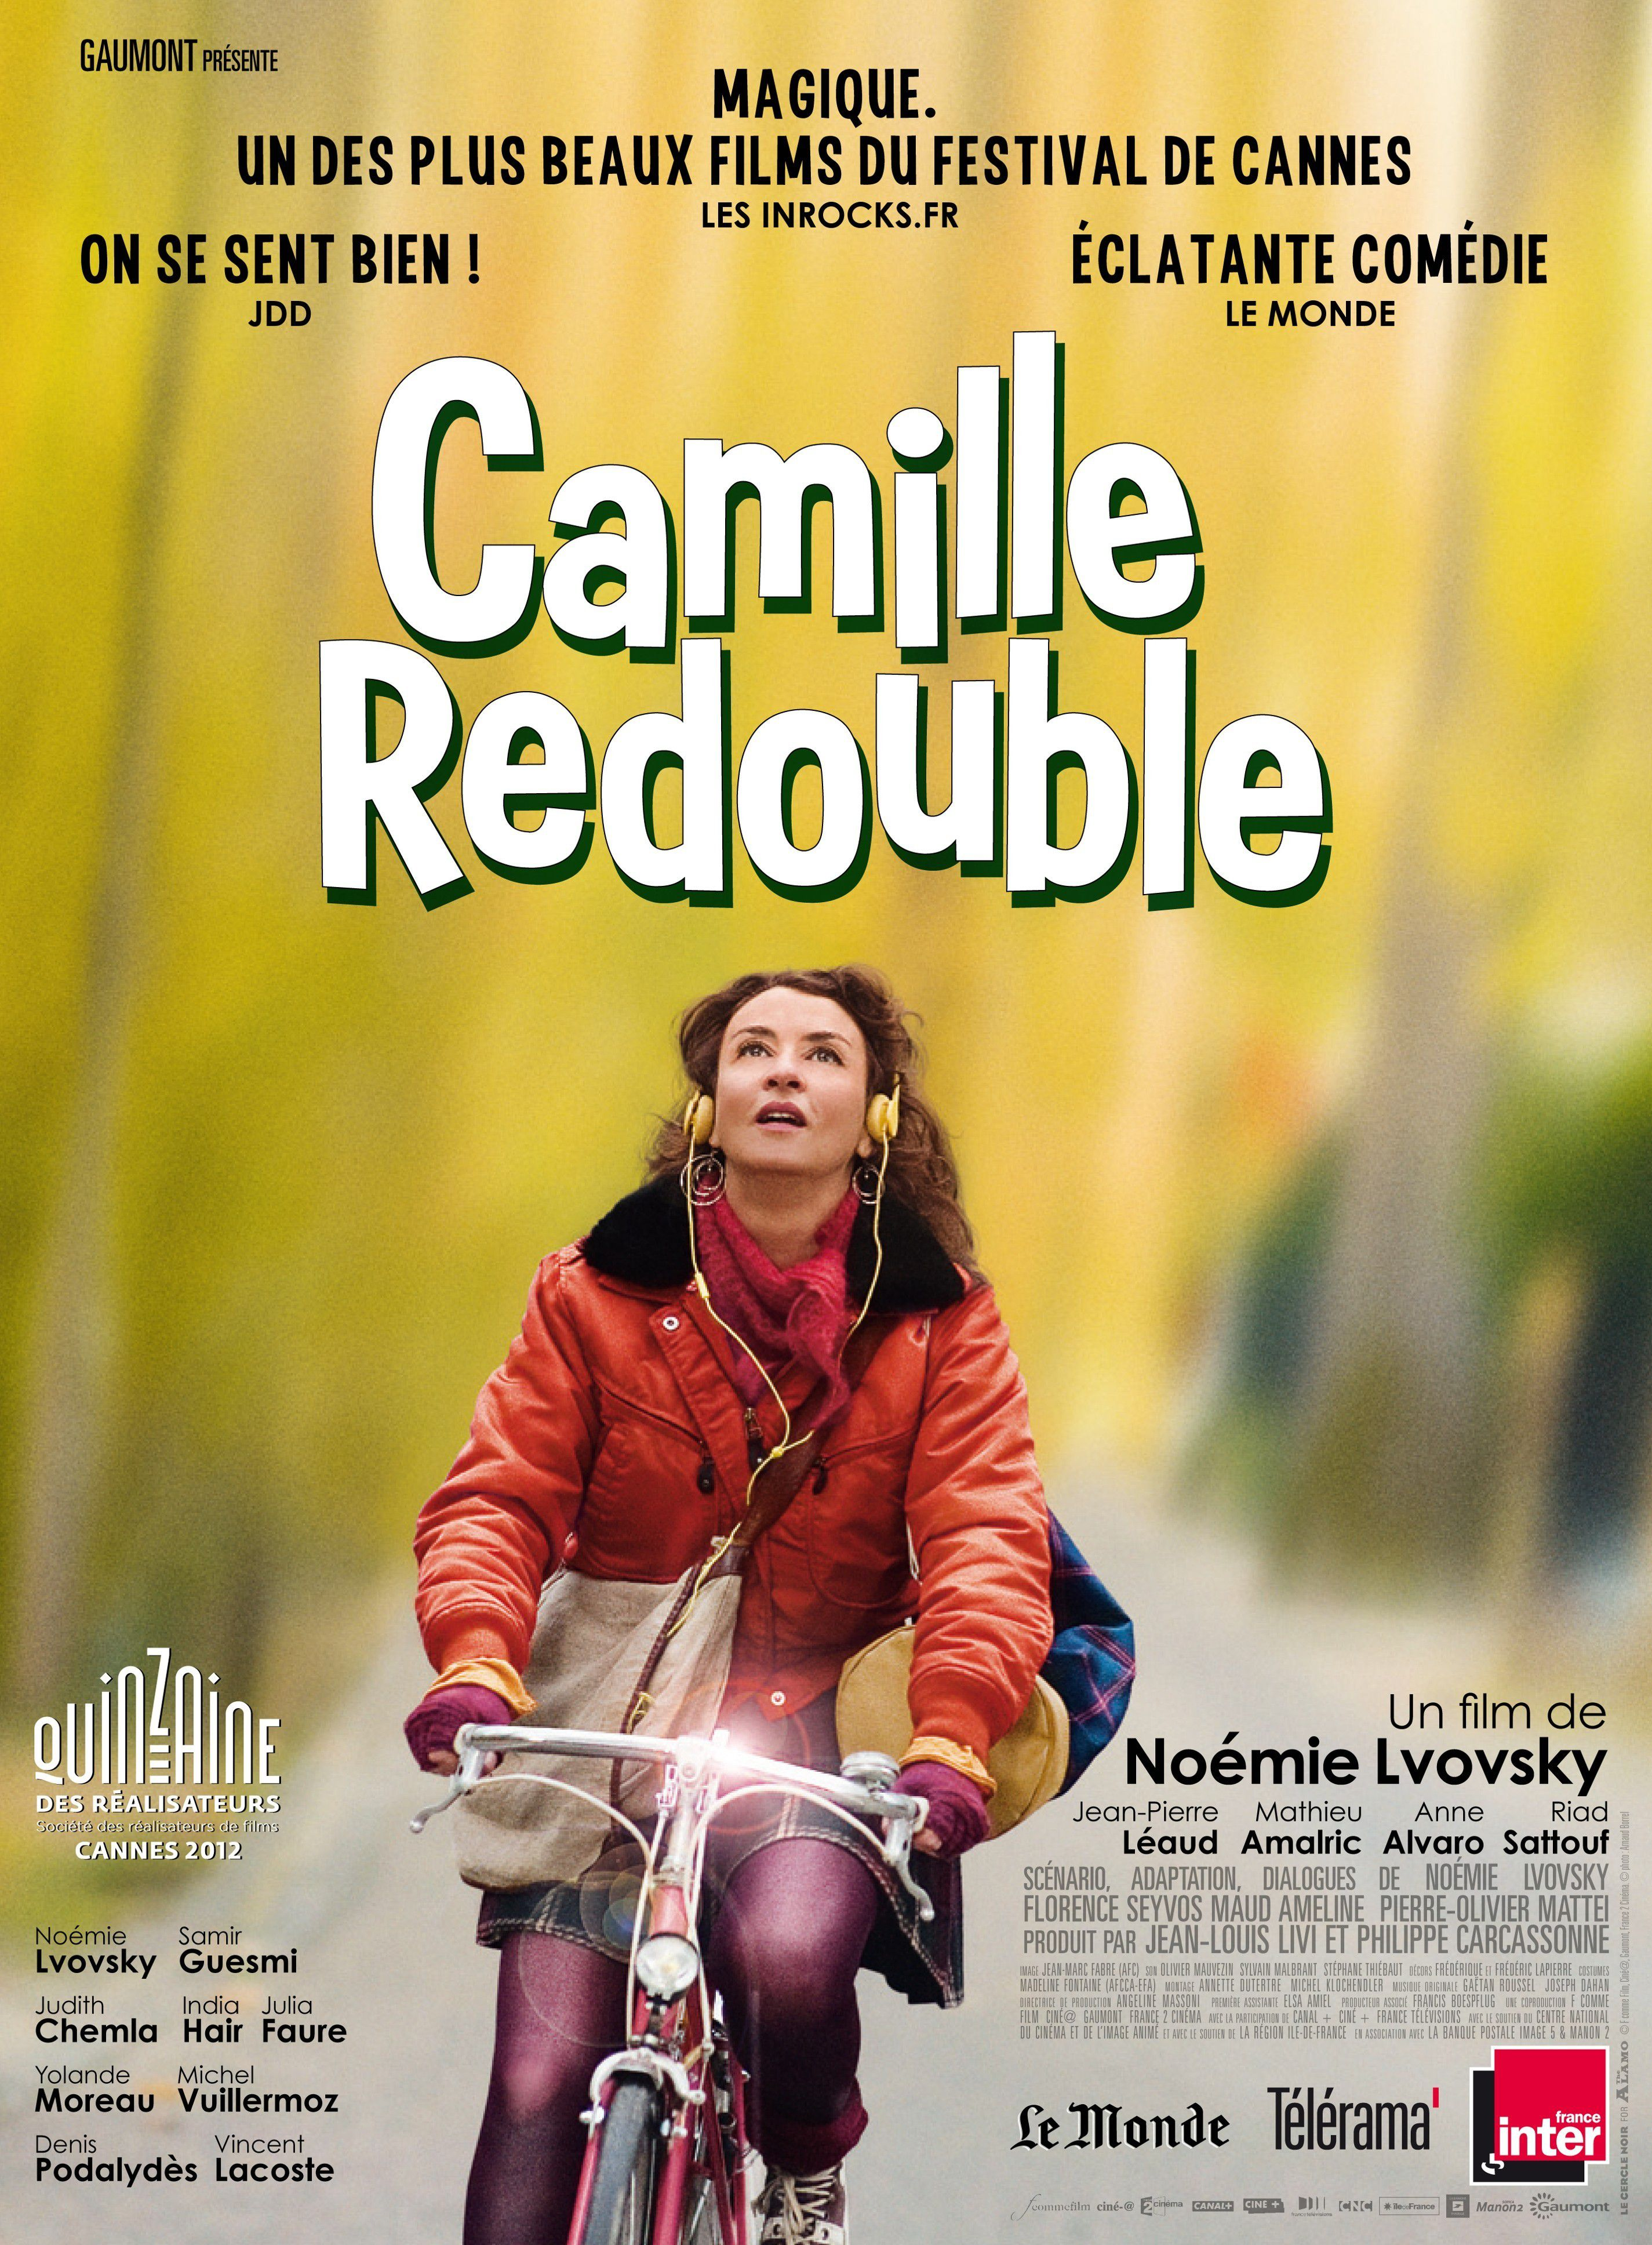 Camille redouble - Film (2012)